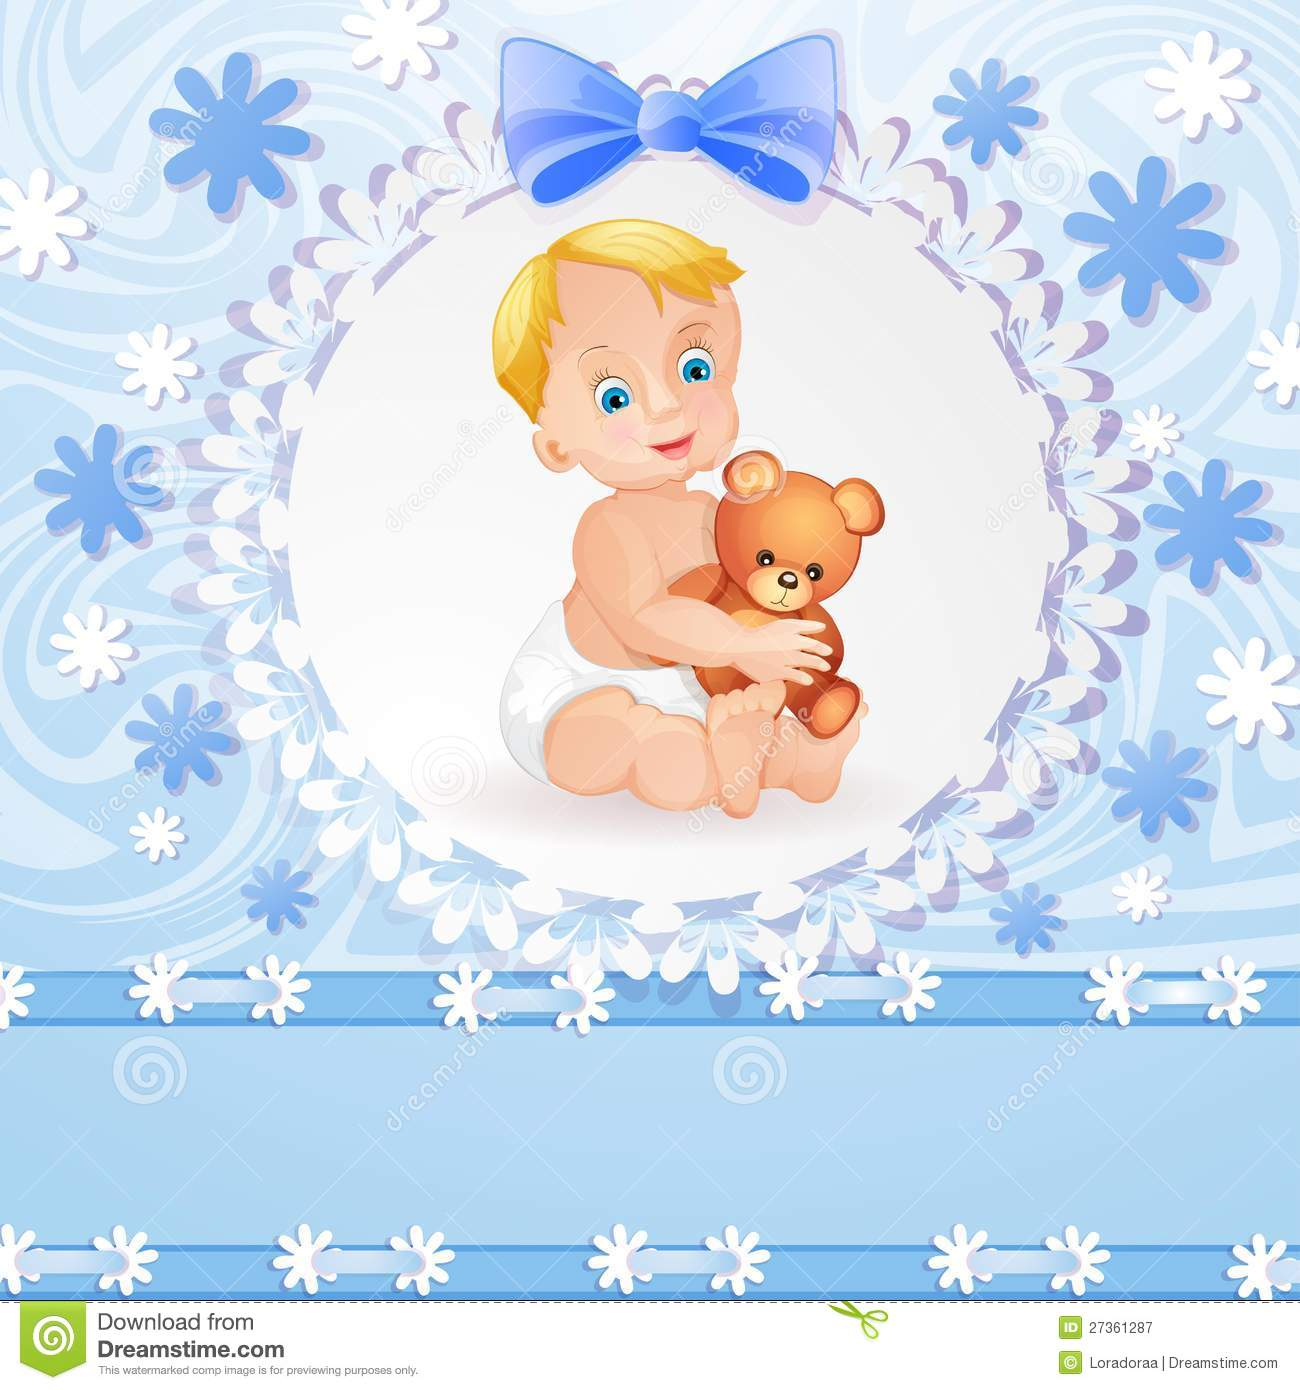 Baby Boy Background Royalty Free Stock Photography - Image: 27361287